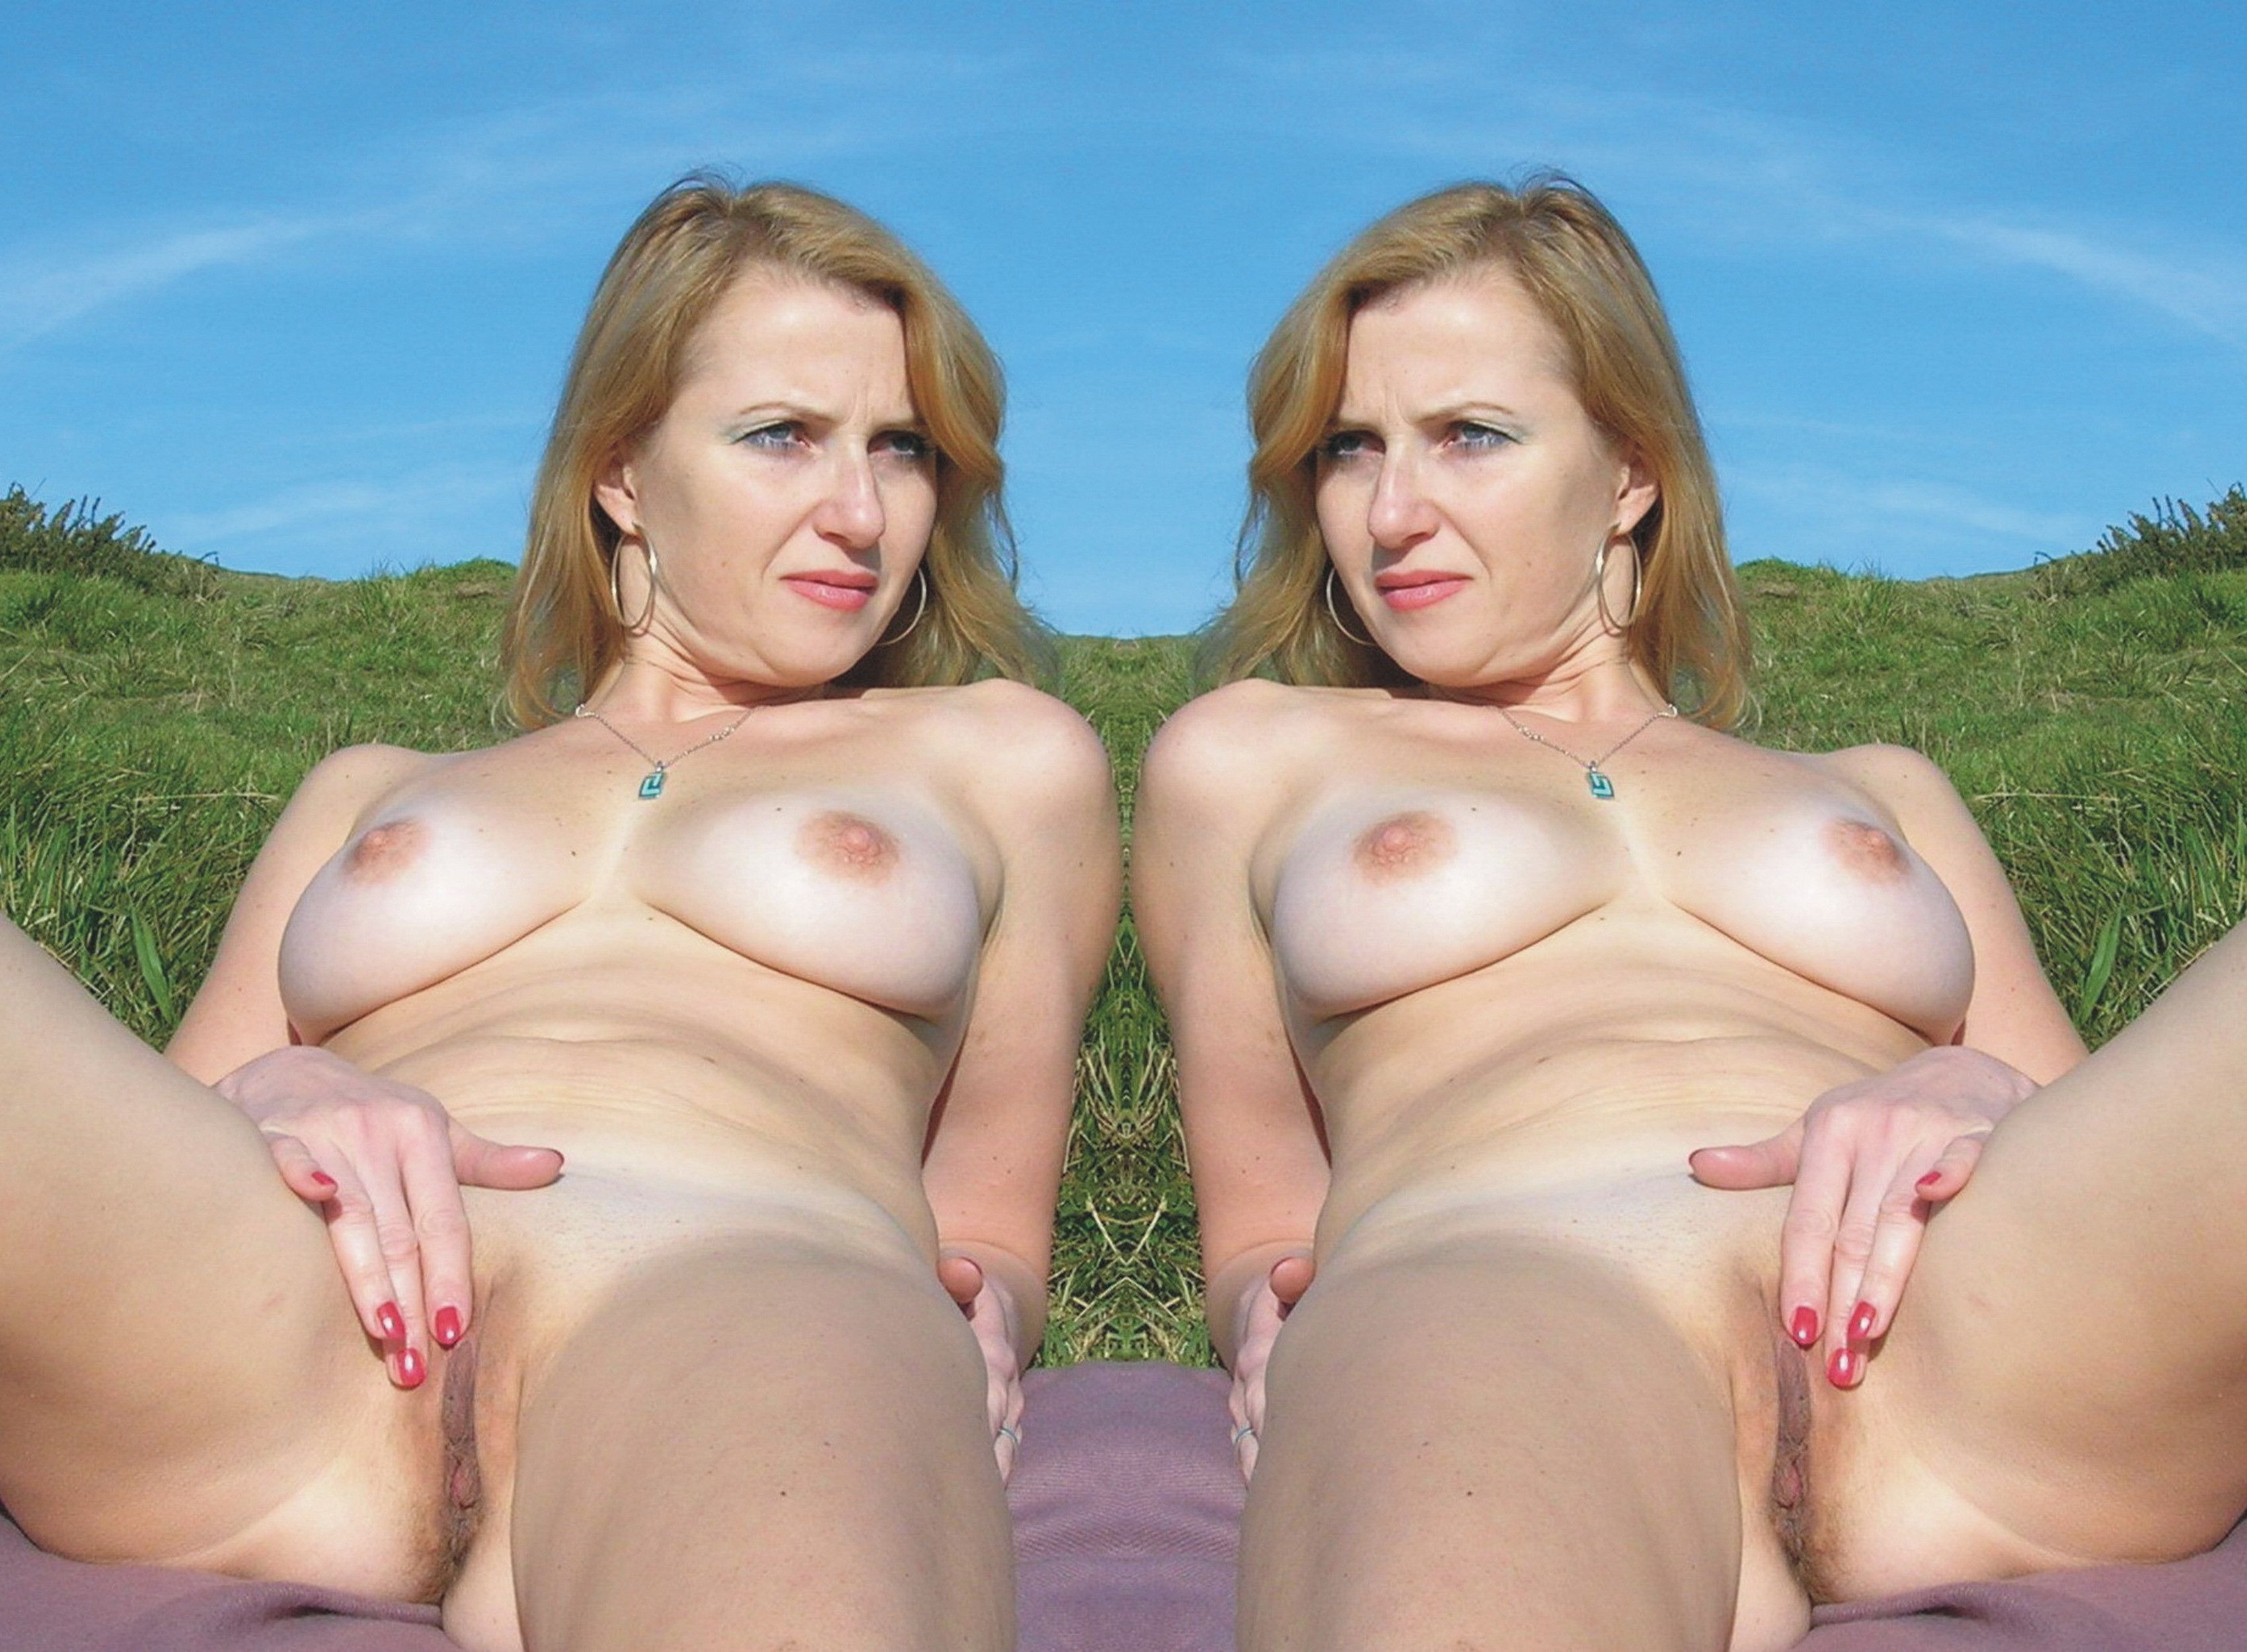 Xxx twins The Top